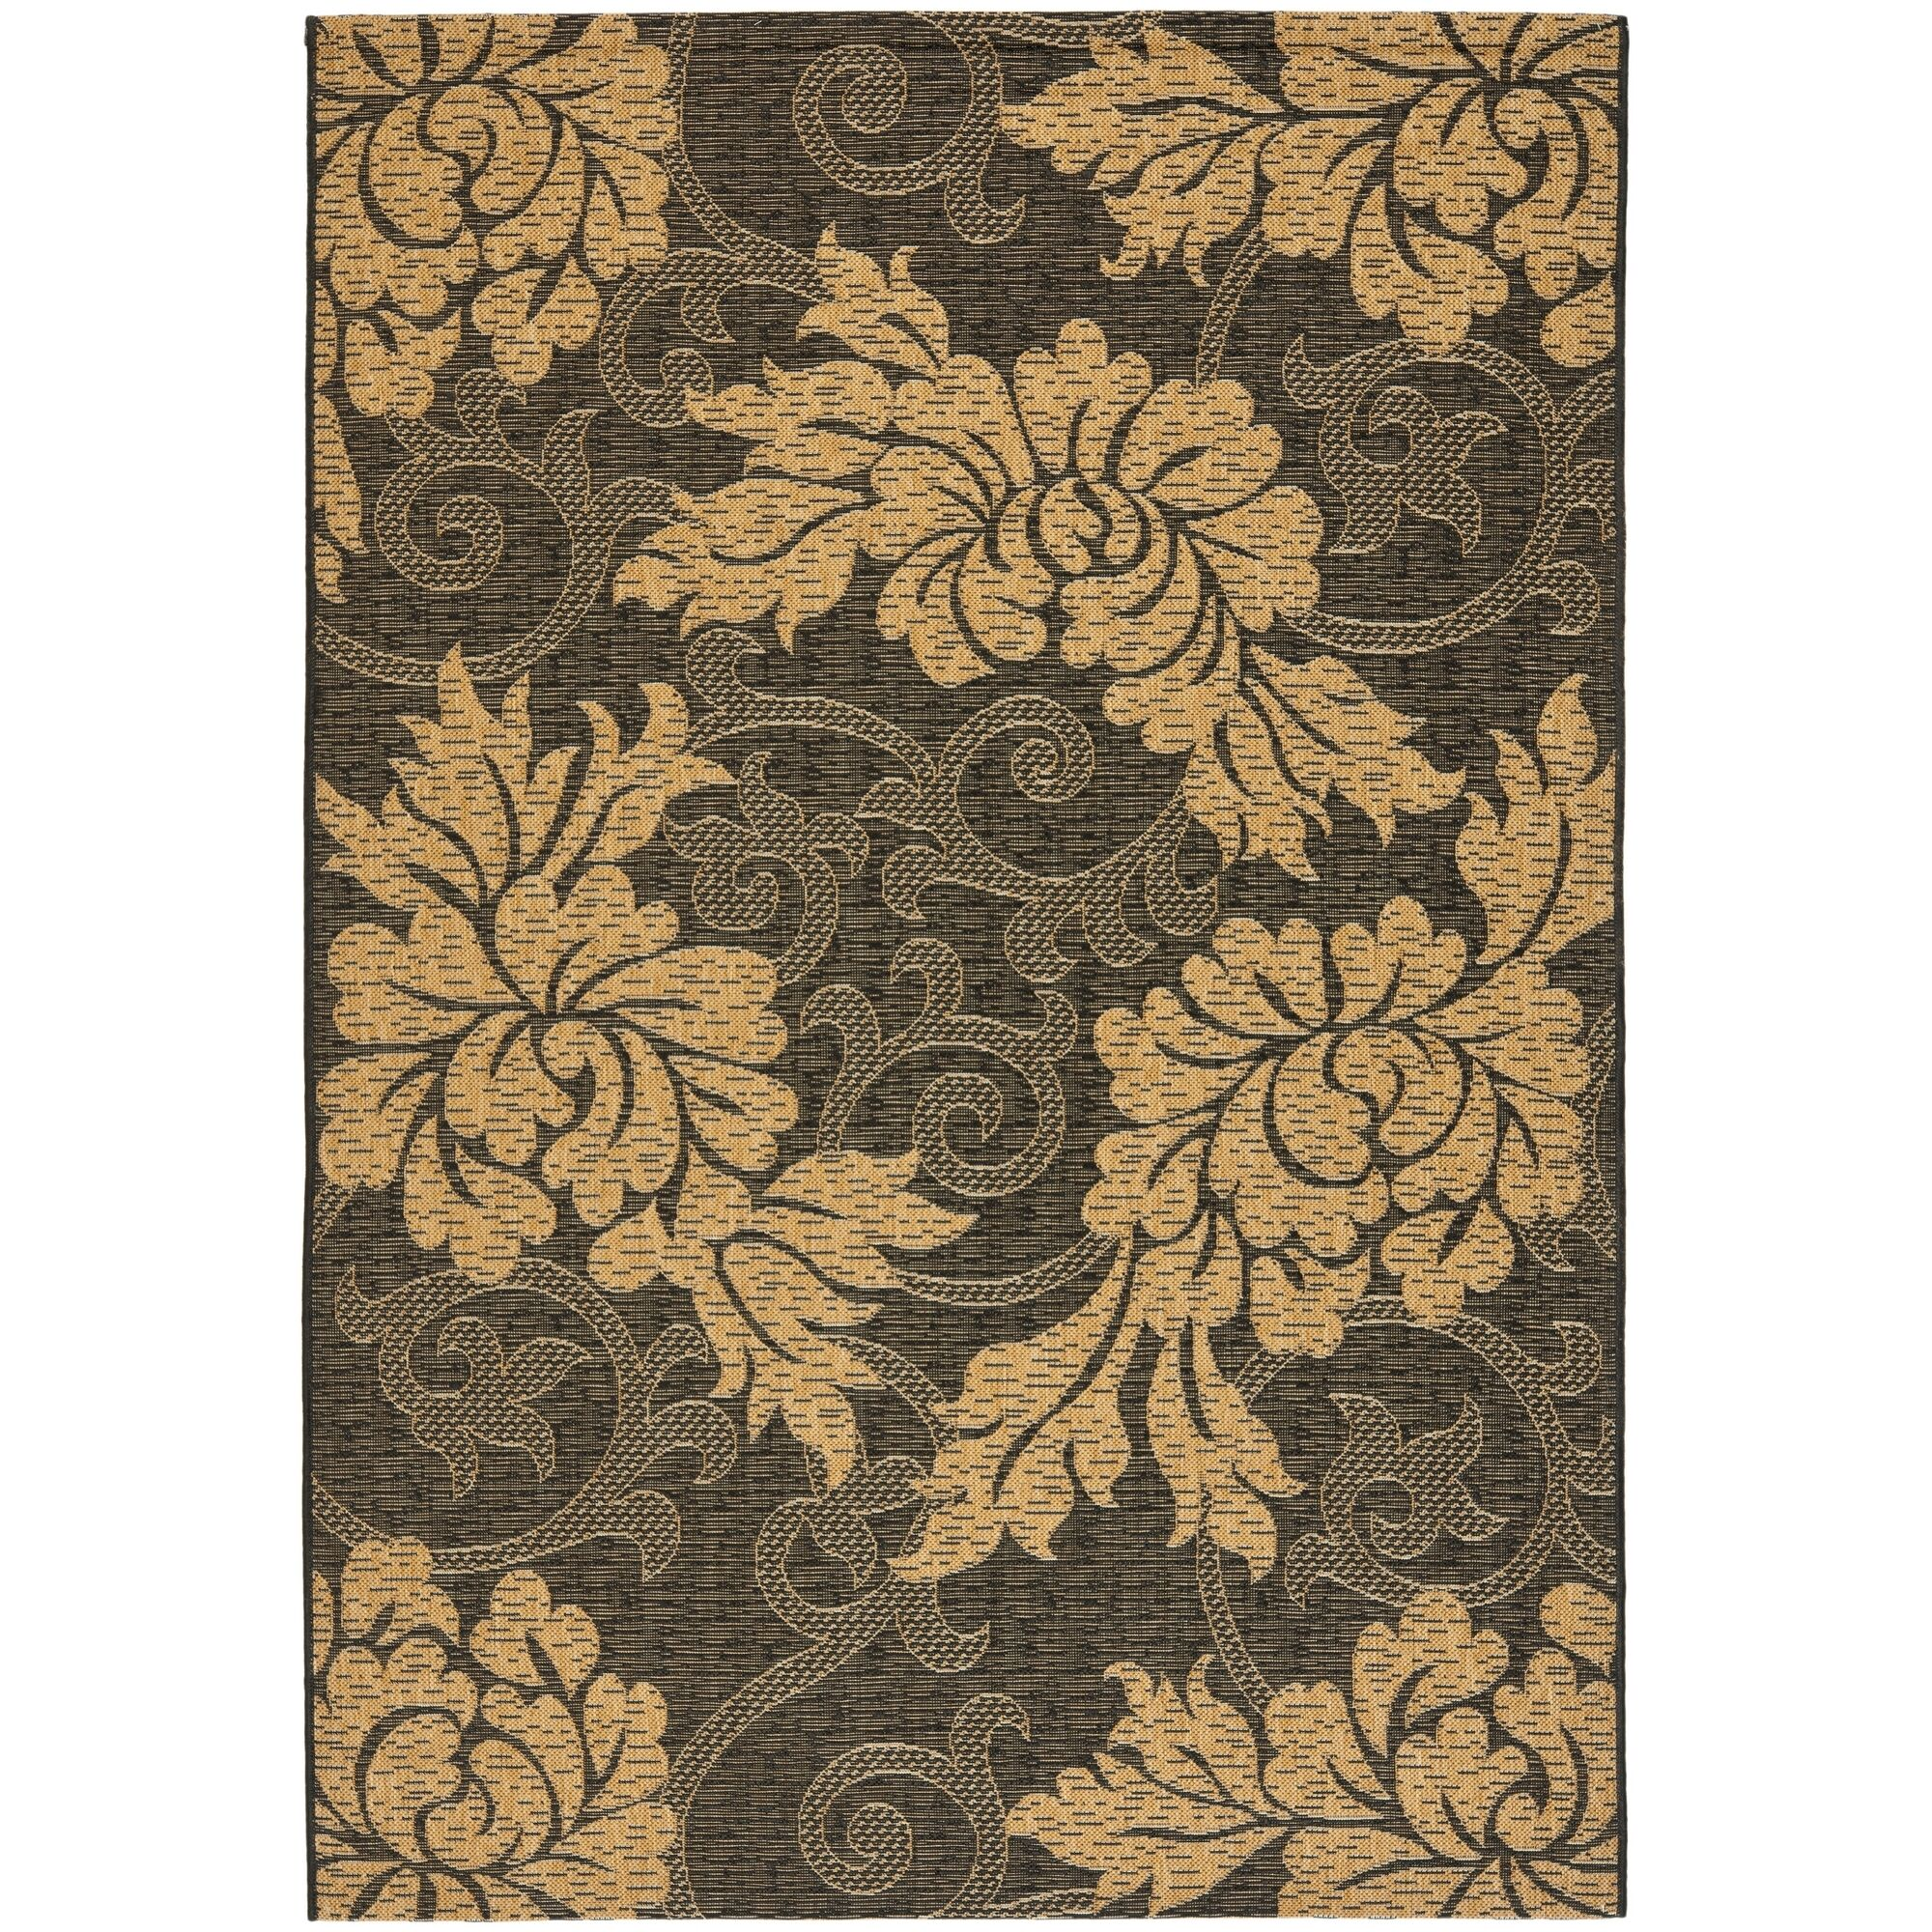 Laurel Black/Gray Indoor/Outdoor Area Rug Rug Size: Rectangle 8' x 11'2